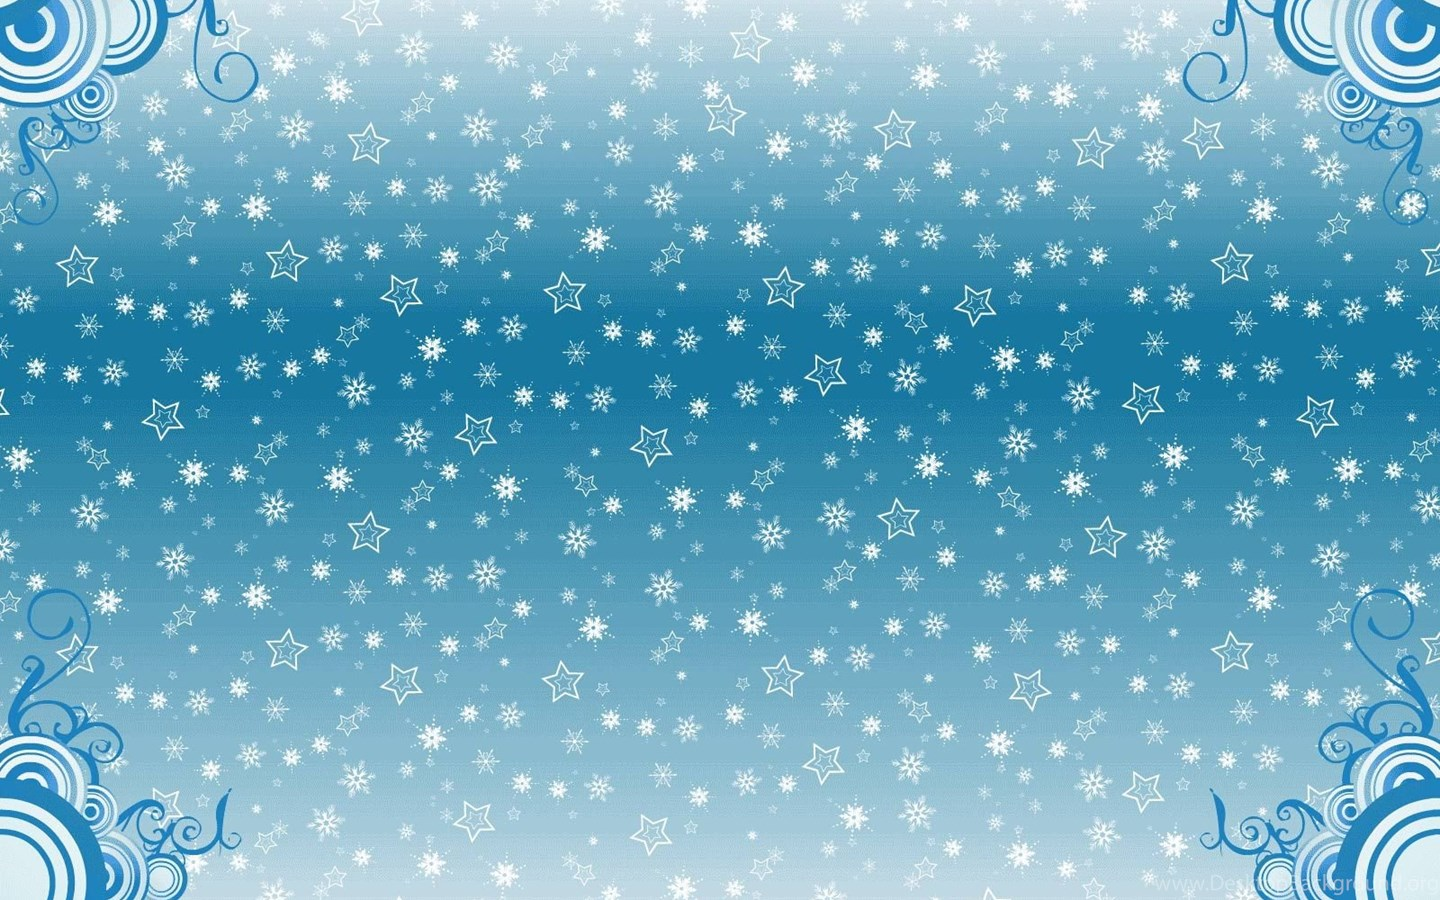 Free silent winter backgrounds for powerpoint holiday ppt widescreen toneelgroepblik Gallery